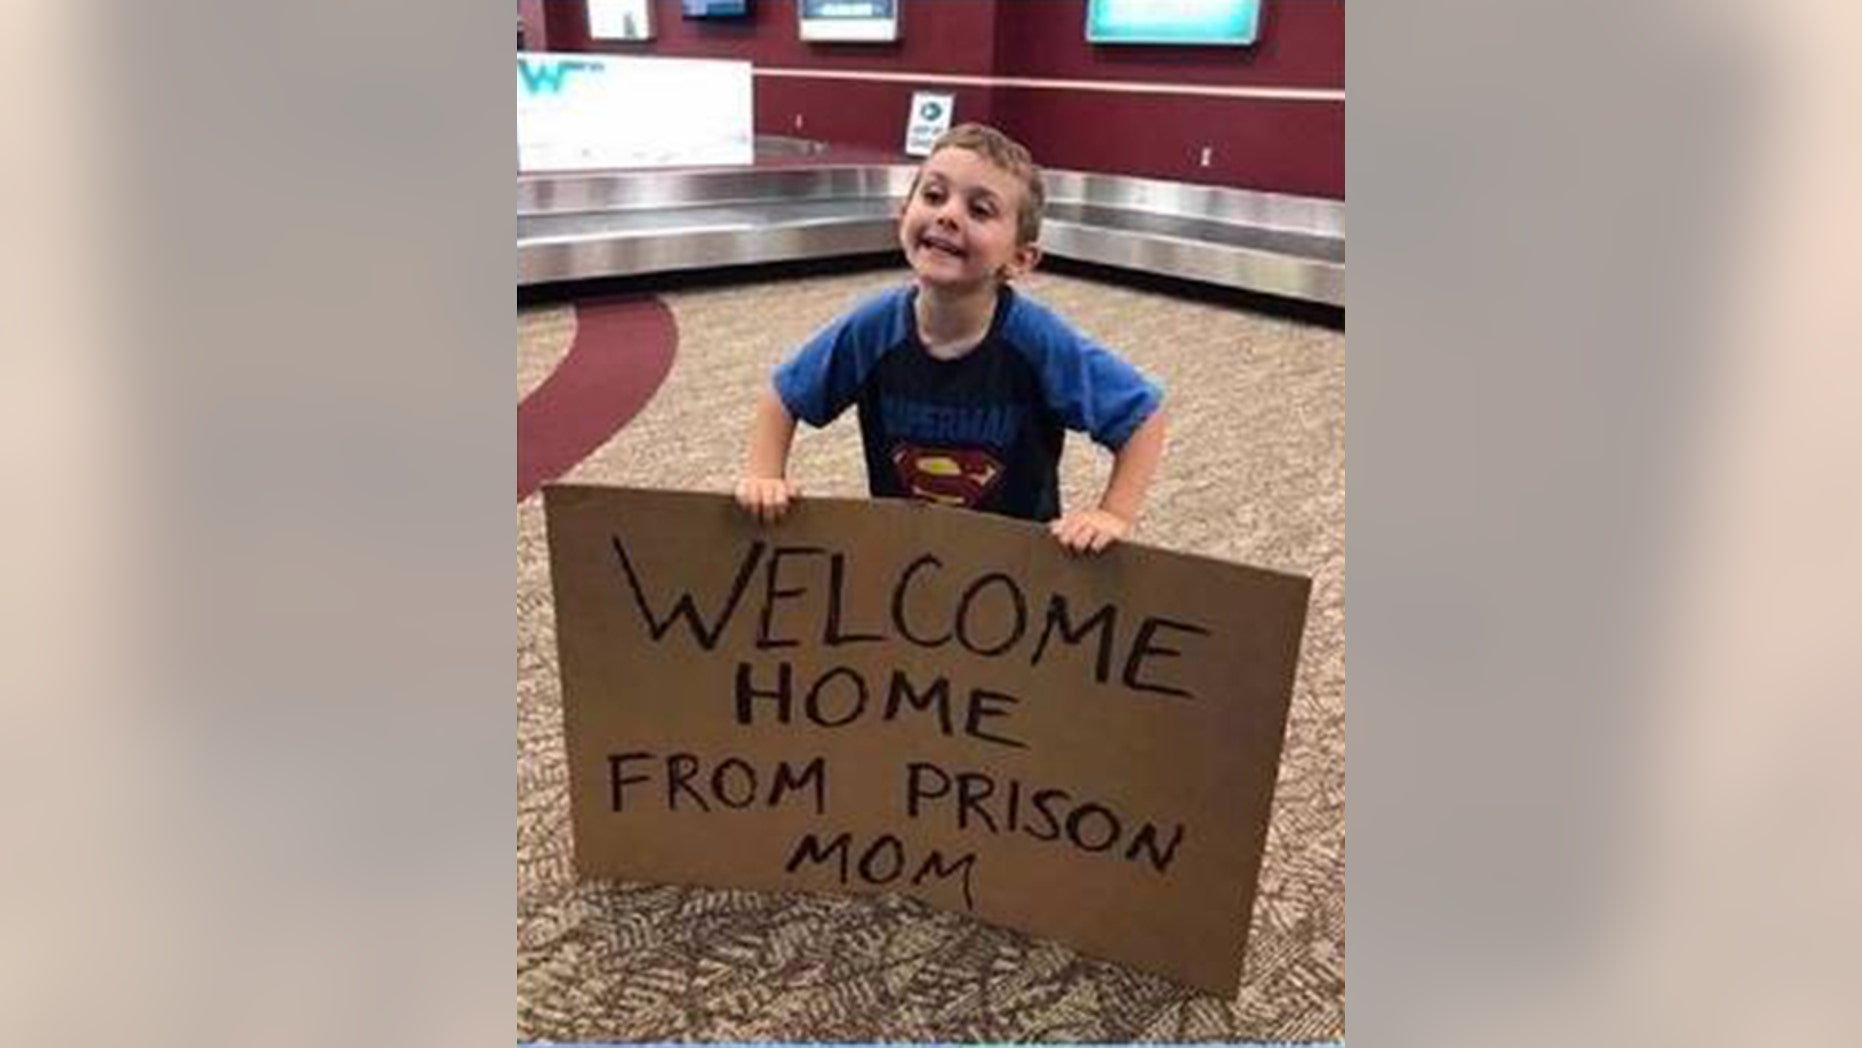 Barbara Nielson was not expecting her son's welcome home sign when she returned from a week-long business trip.